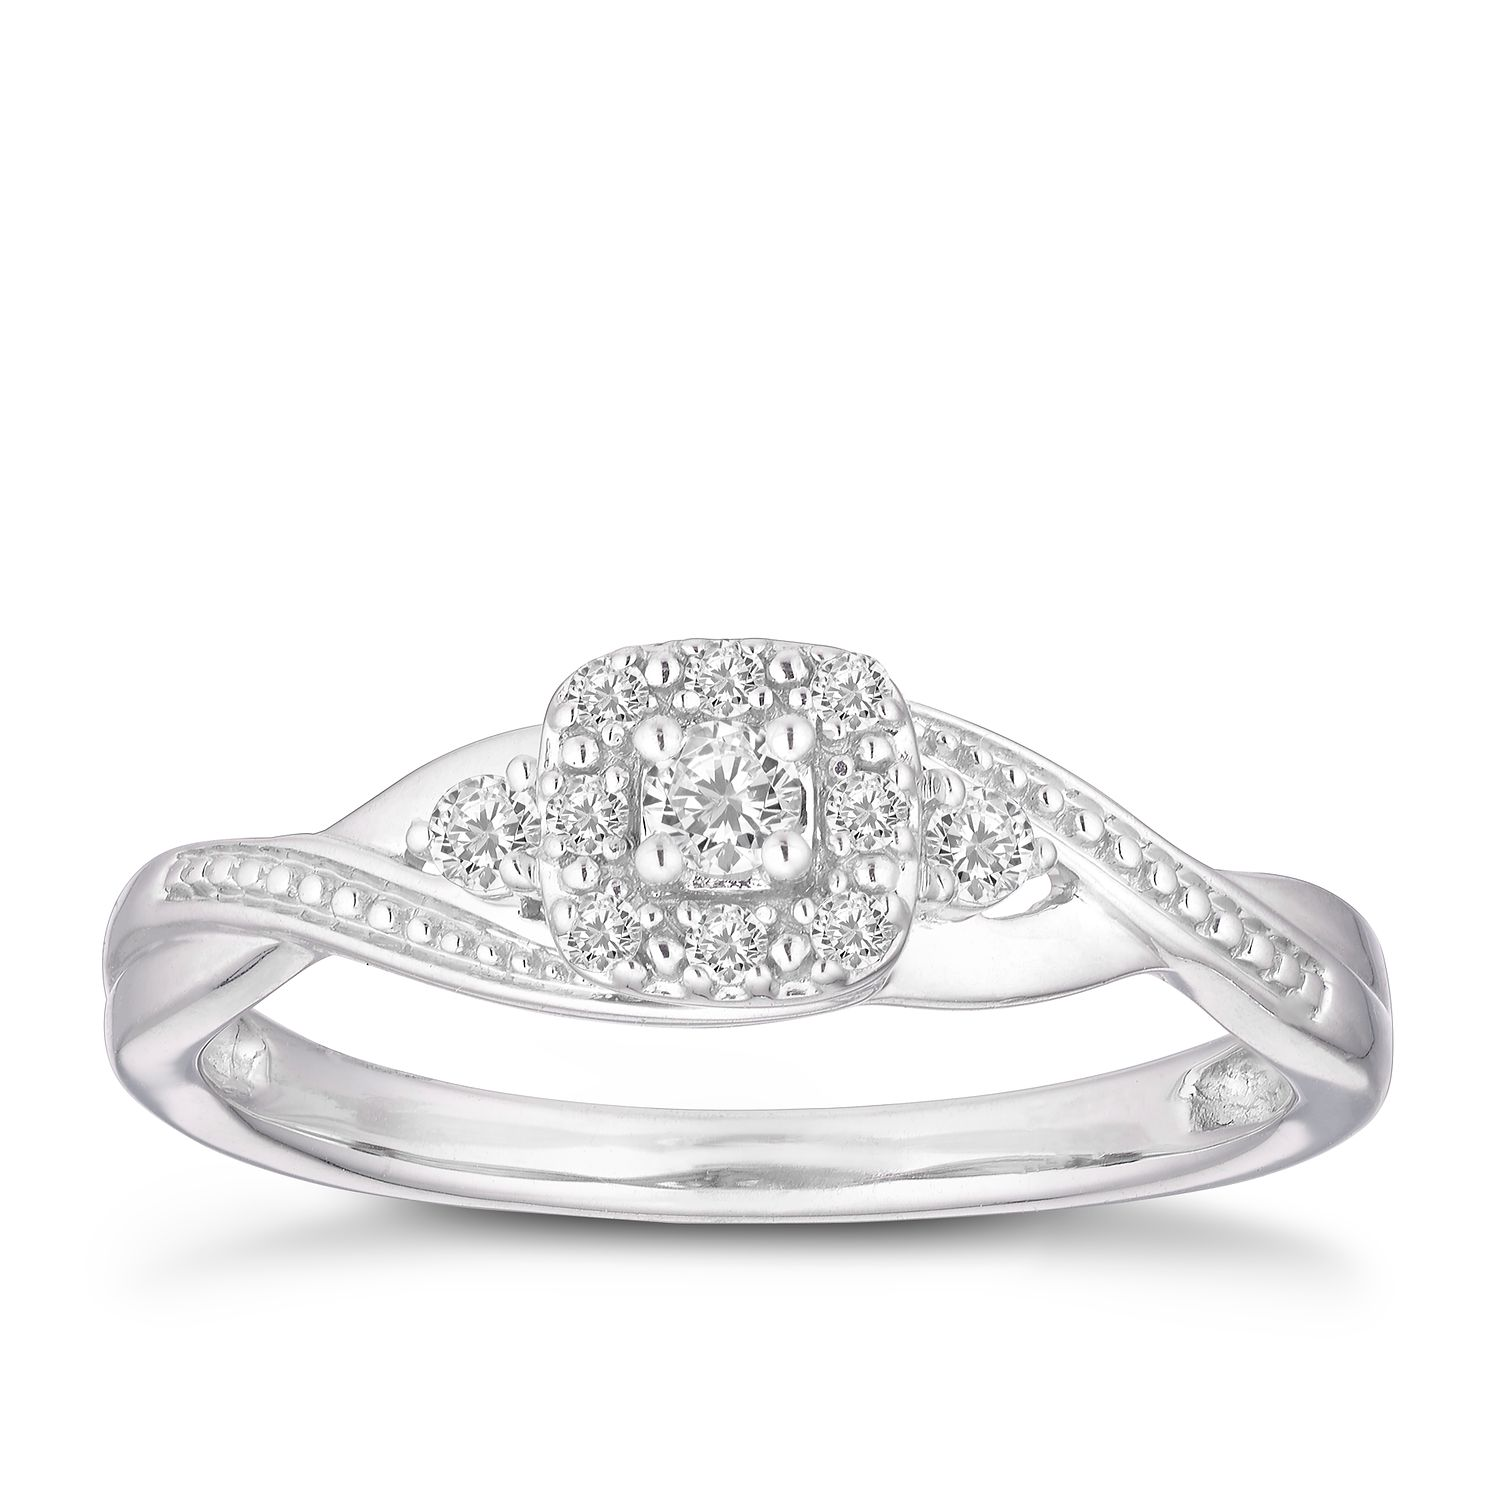 leo setting rings diamond of carat inspirations wedding awesome ring best tiffany engagement